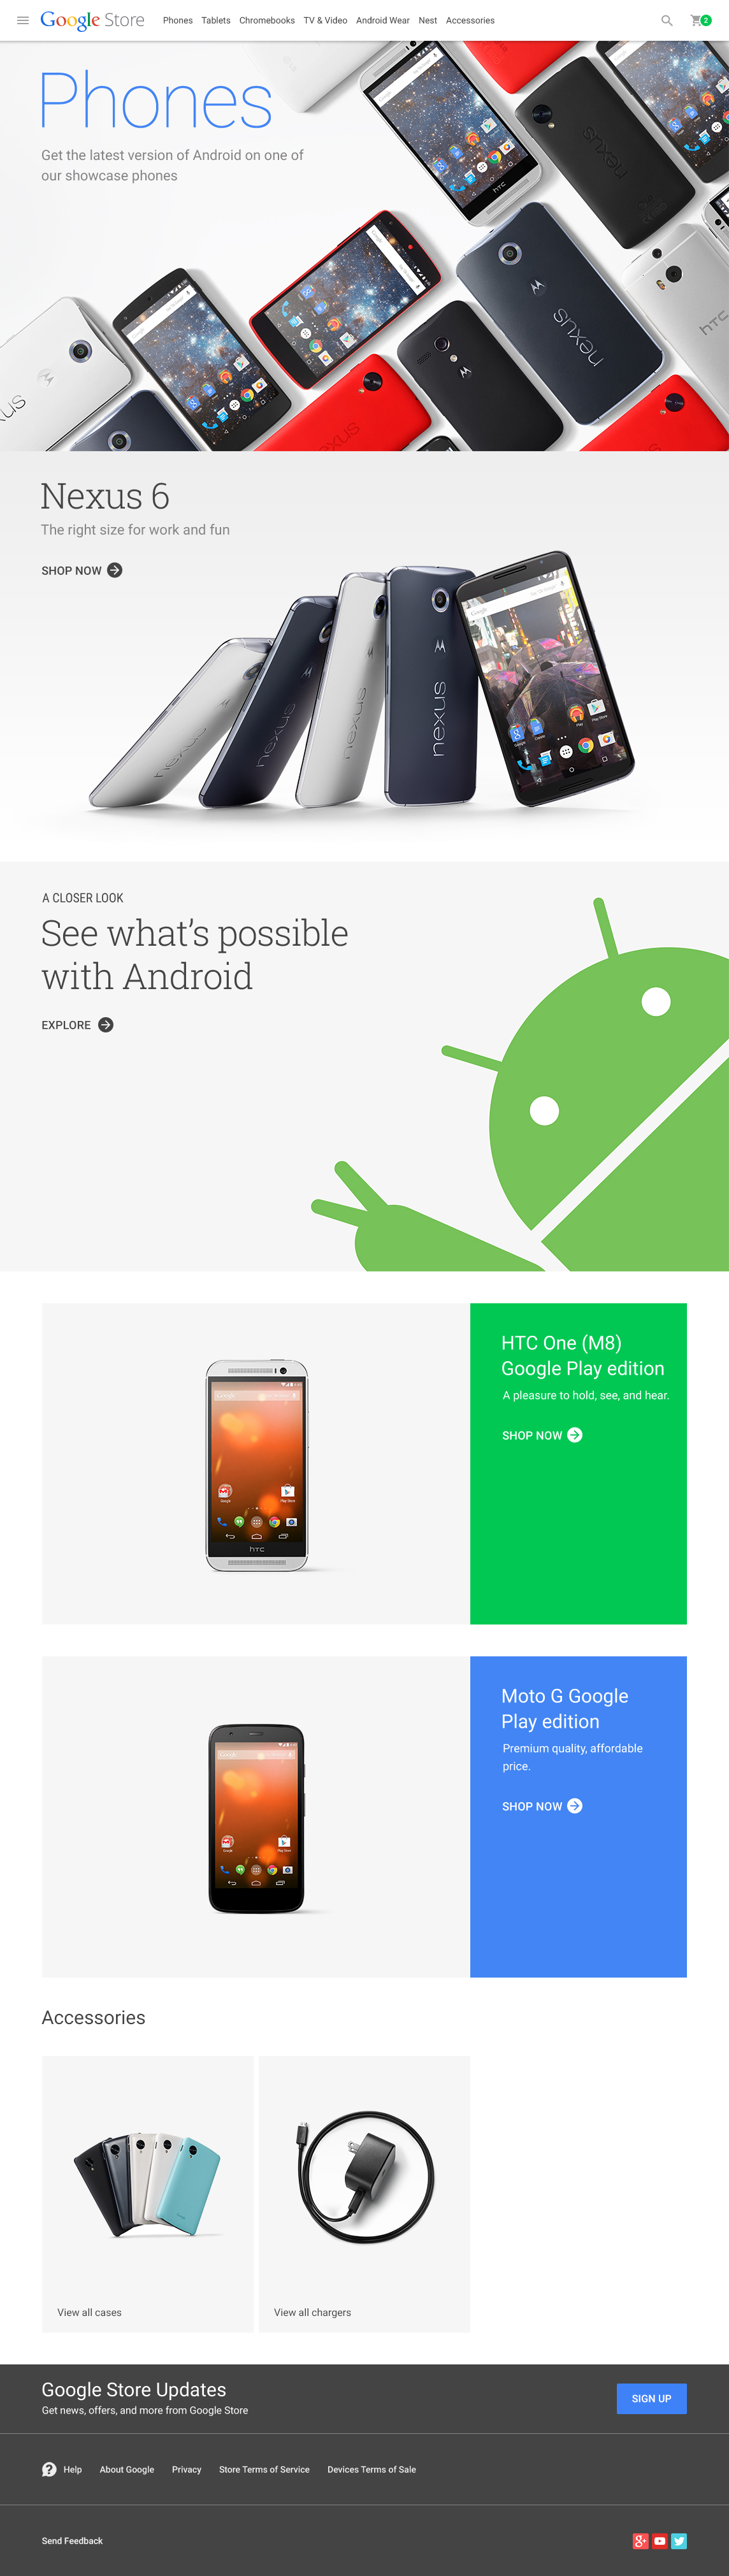 Android Phones Category Page